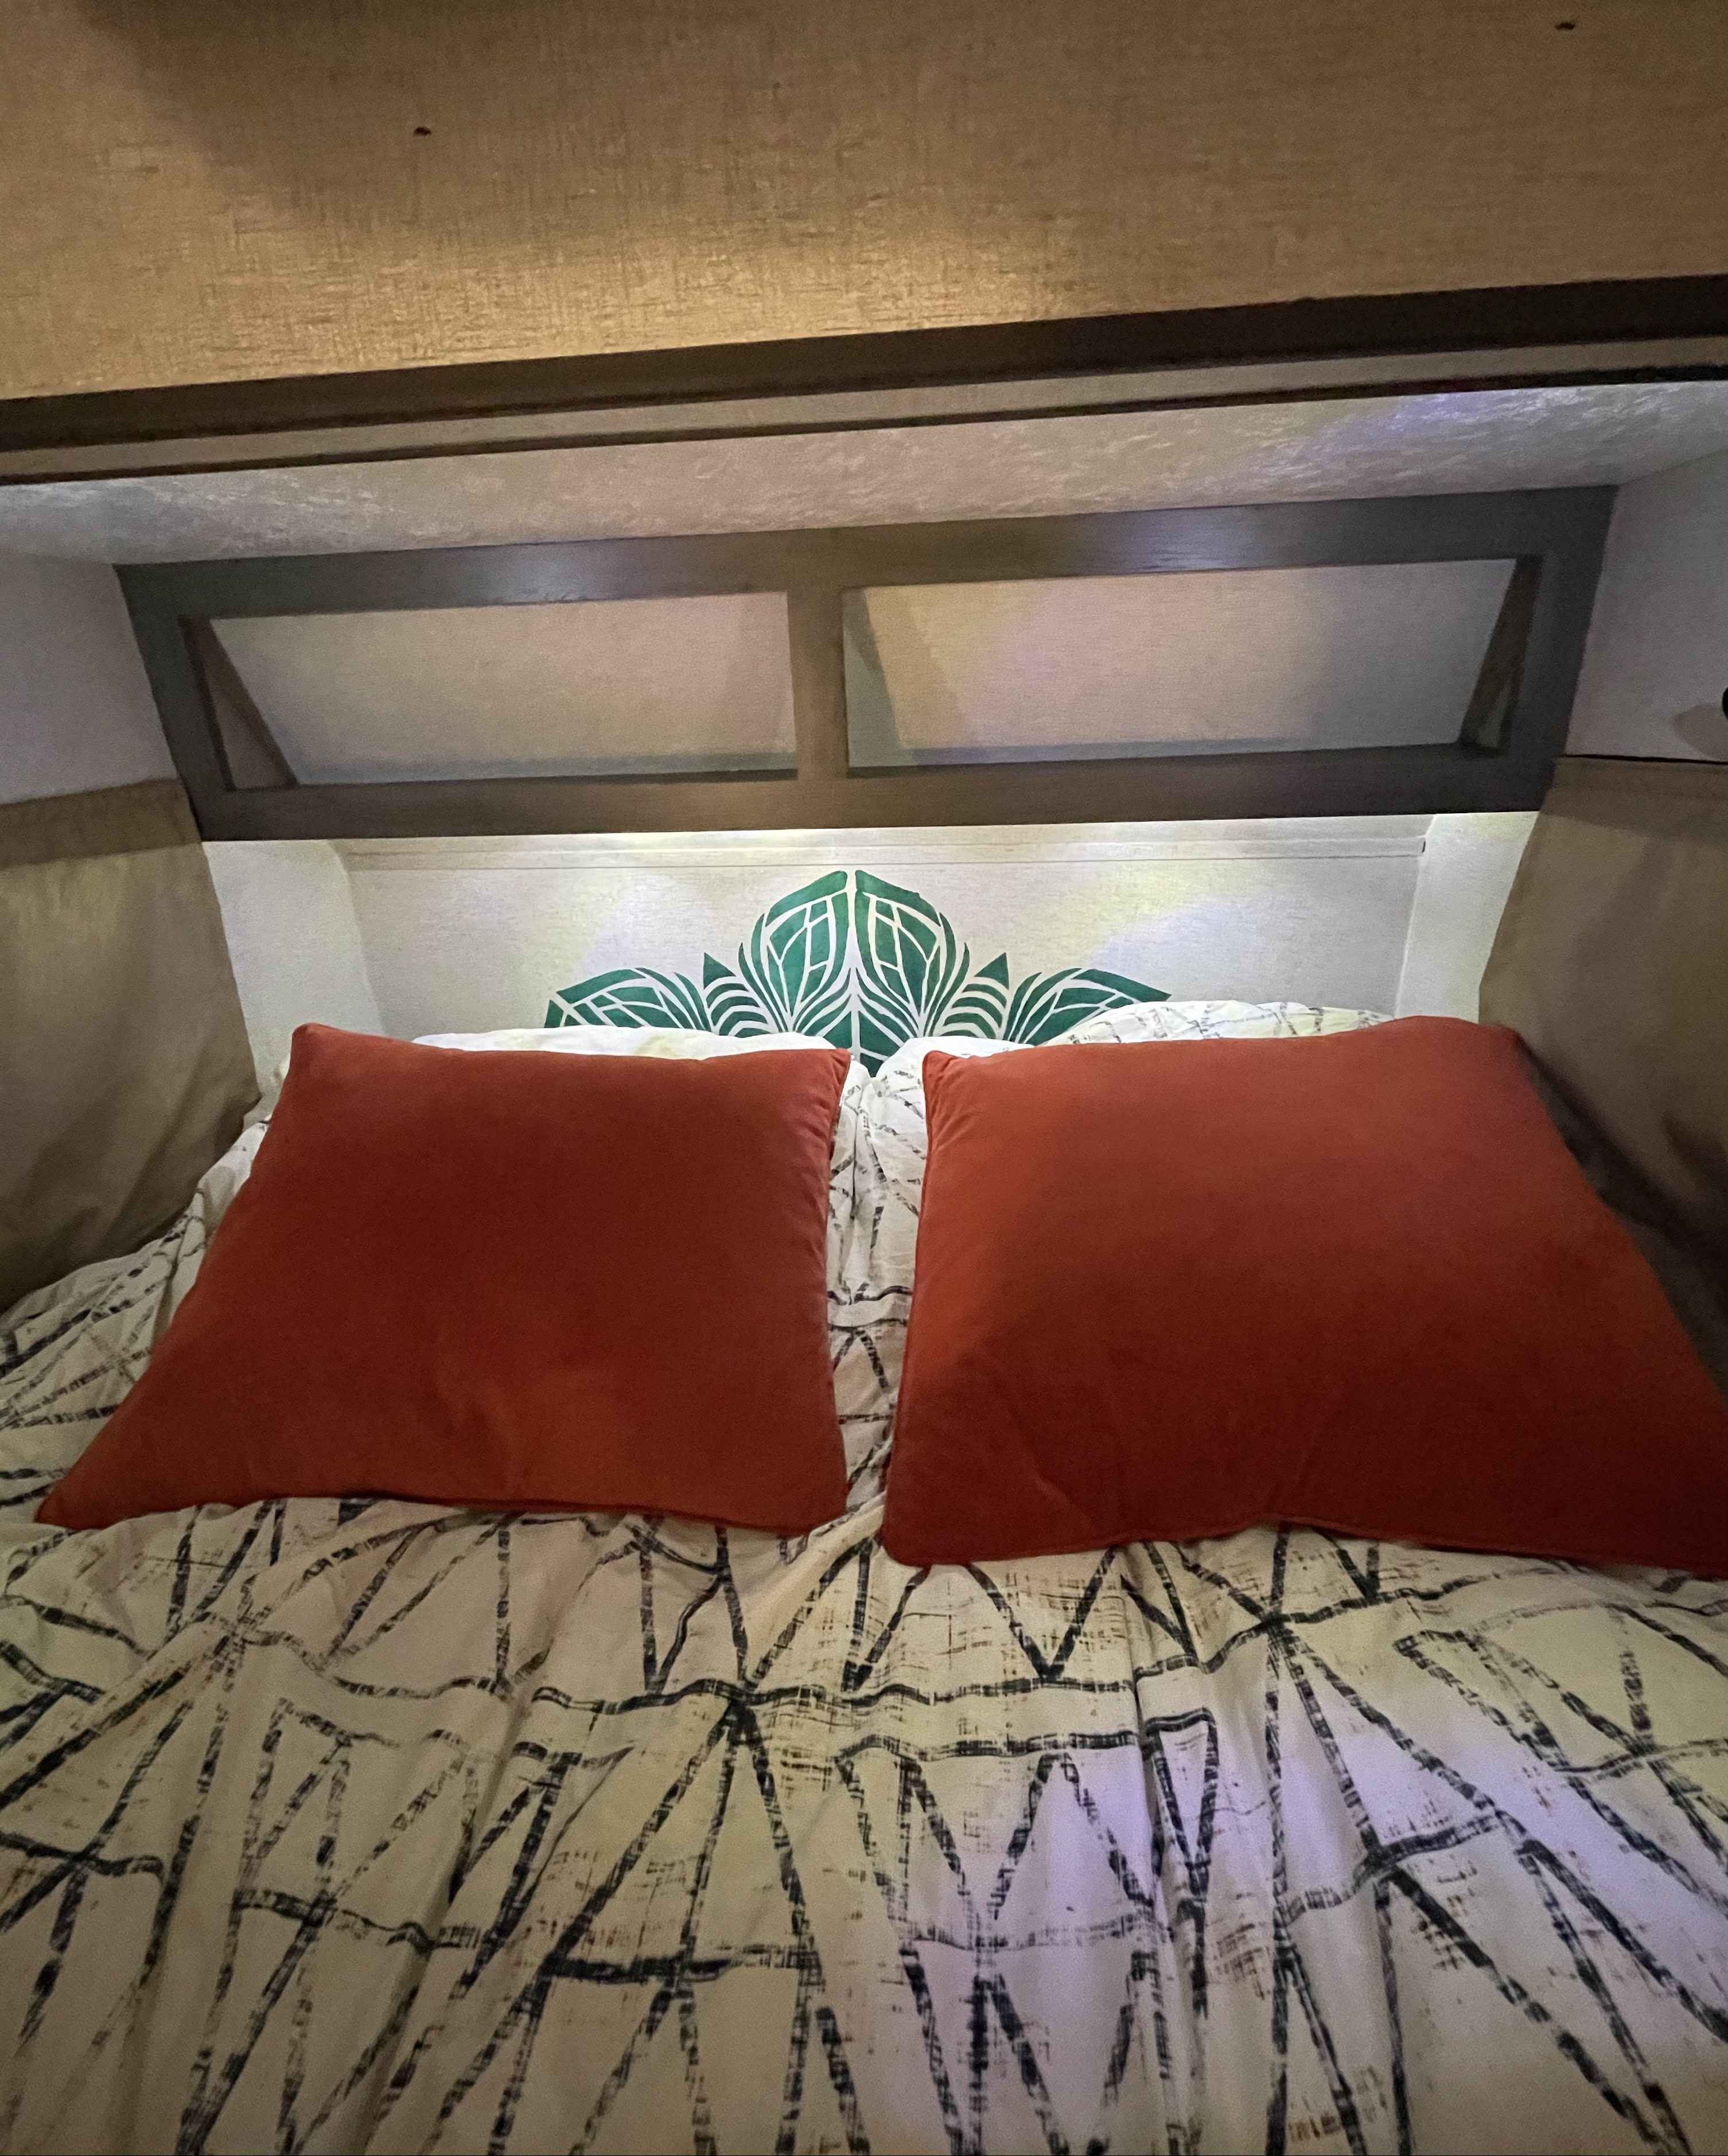 We provide you with bedding suited to your needs including: sheets, a cozy blanket, and pillows (if you don't want to bring your own... which you are certainly welcome to do). She also has lighting for days that runs off the included battery.. Coachmen Viking 2019